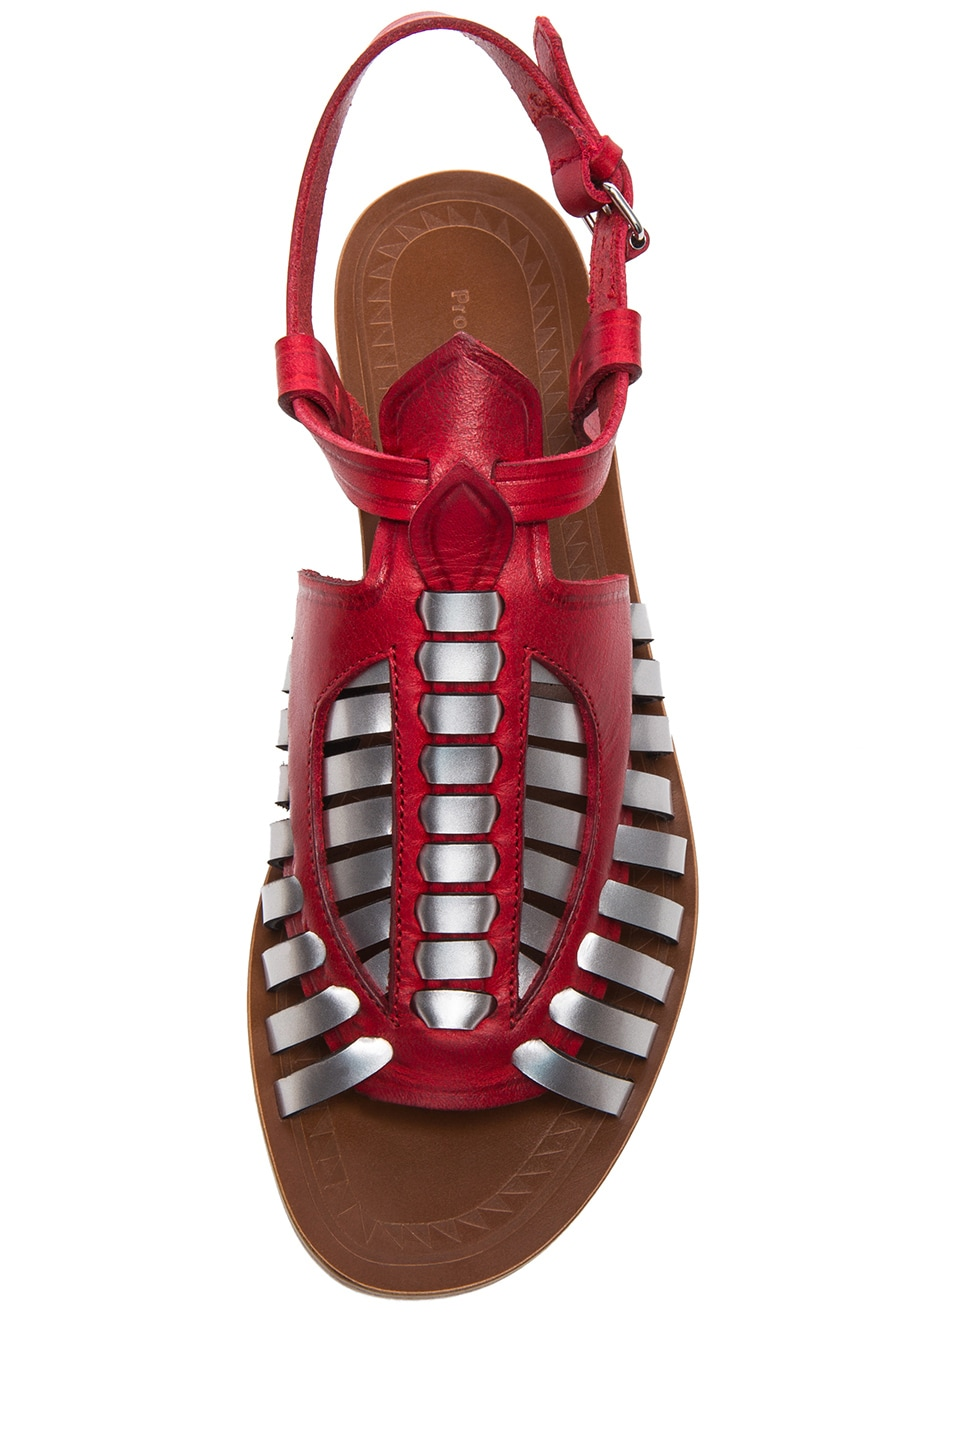 df00a7dc5707b Image 4 of Proenza Schouler Woven Leather Flat Sandals in Red   Silver